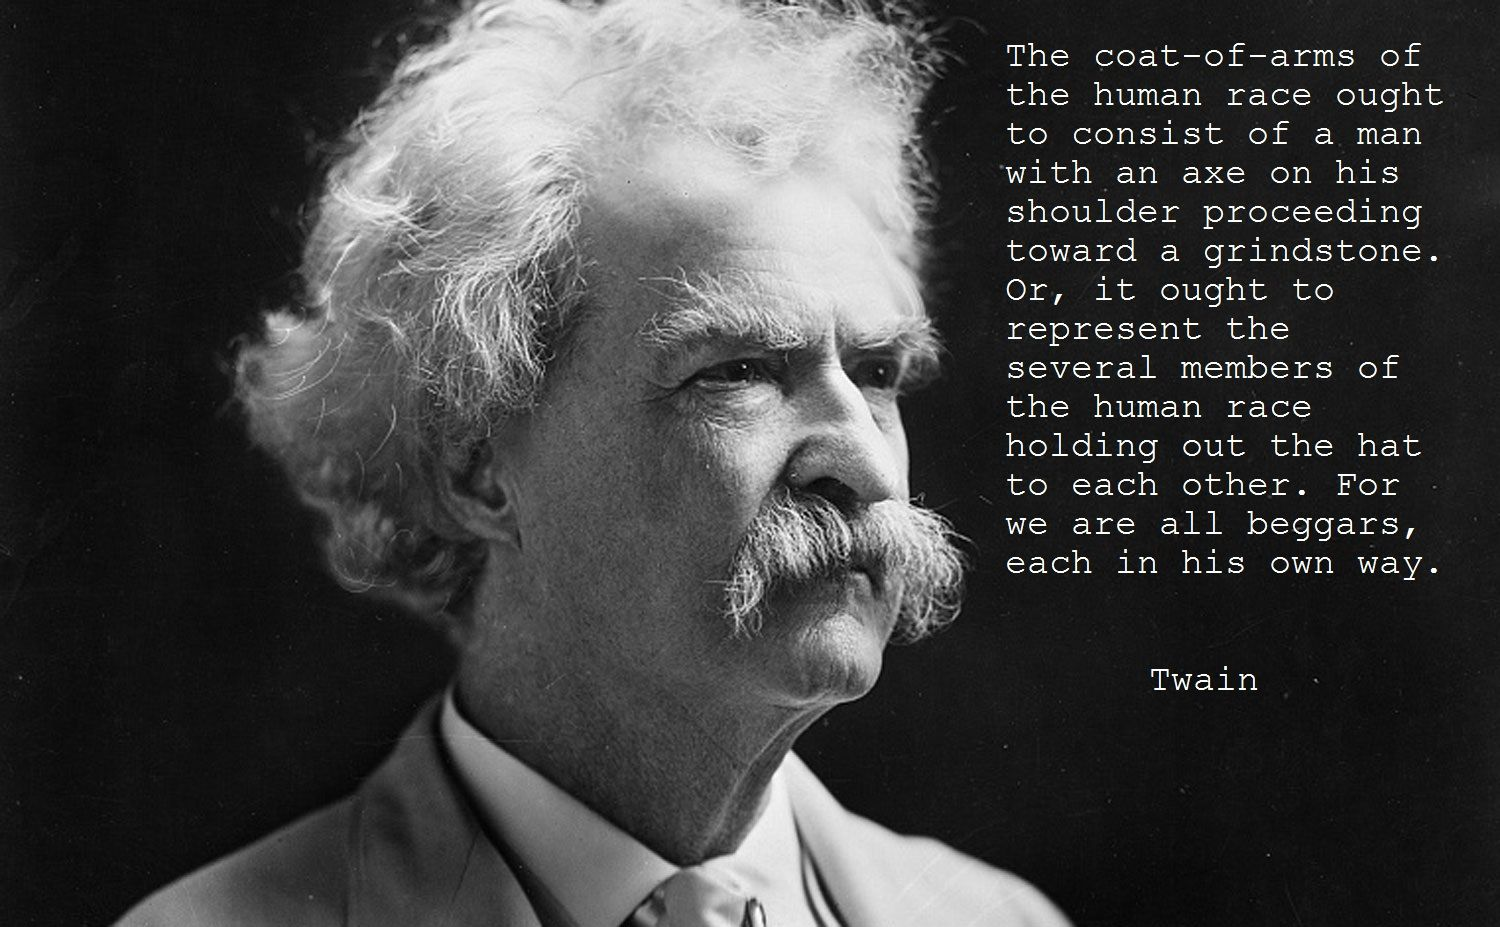 'The coat of arms of the human race...' - Mark Twain [1500x927]